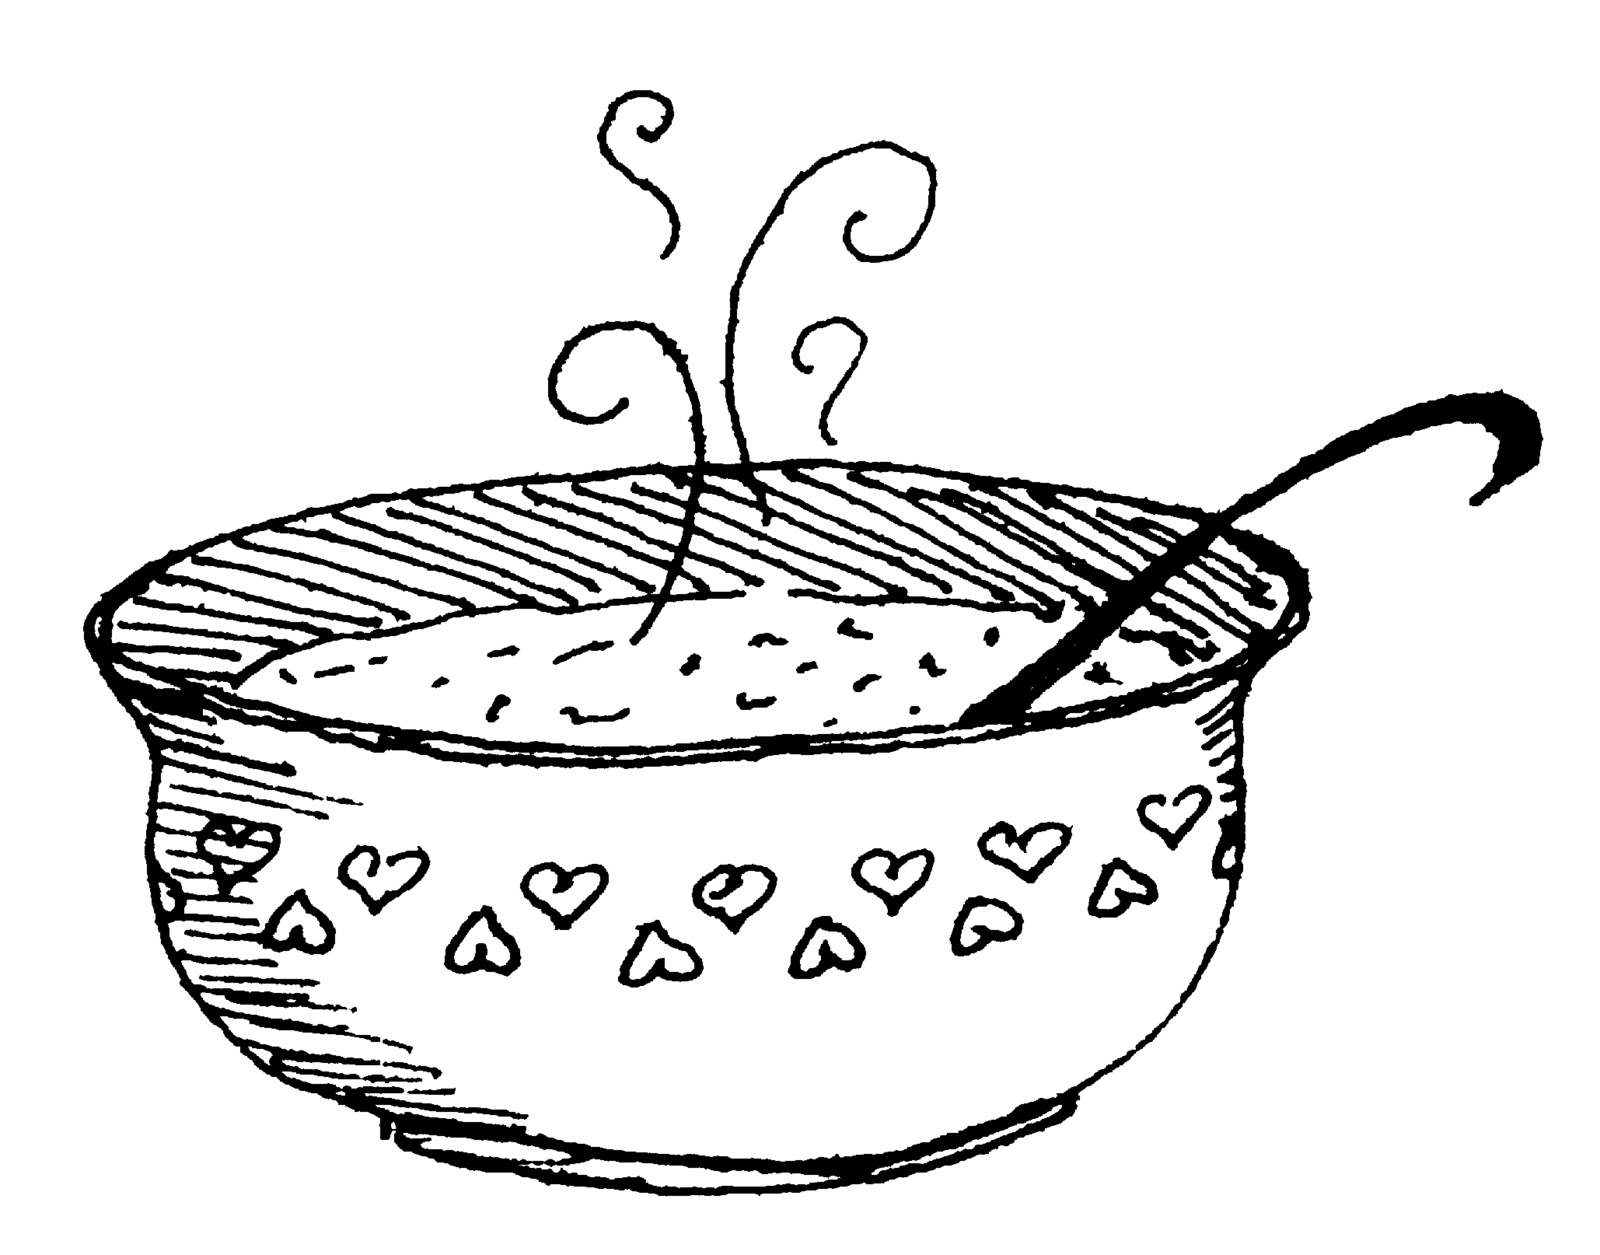 Hot and cold clipart black and white.